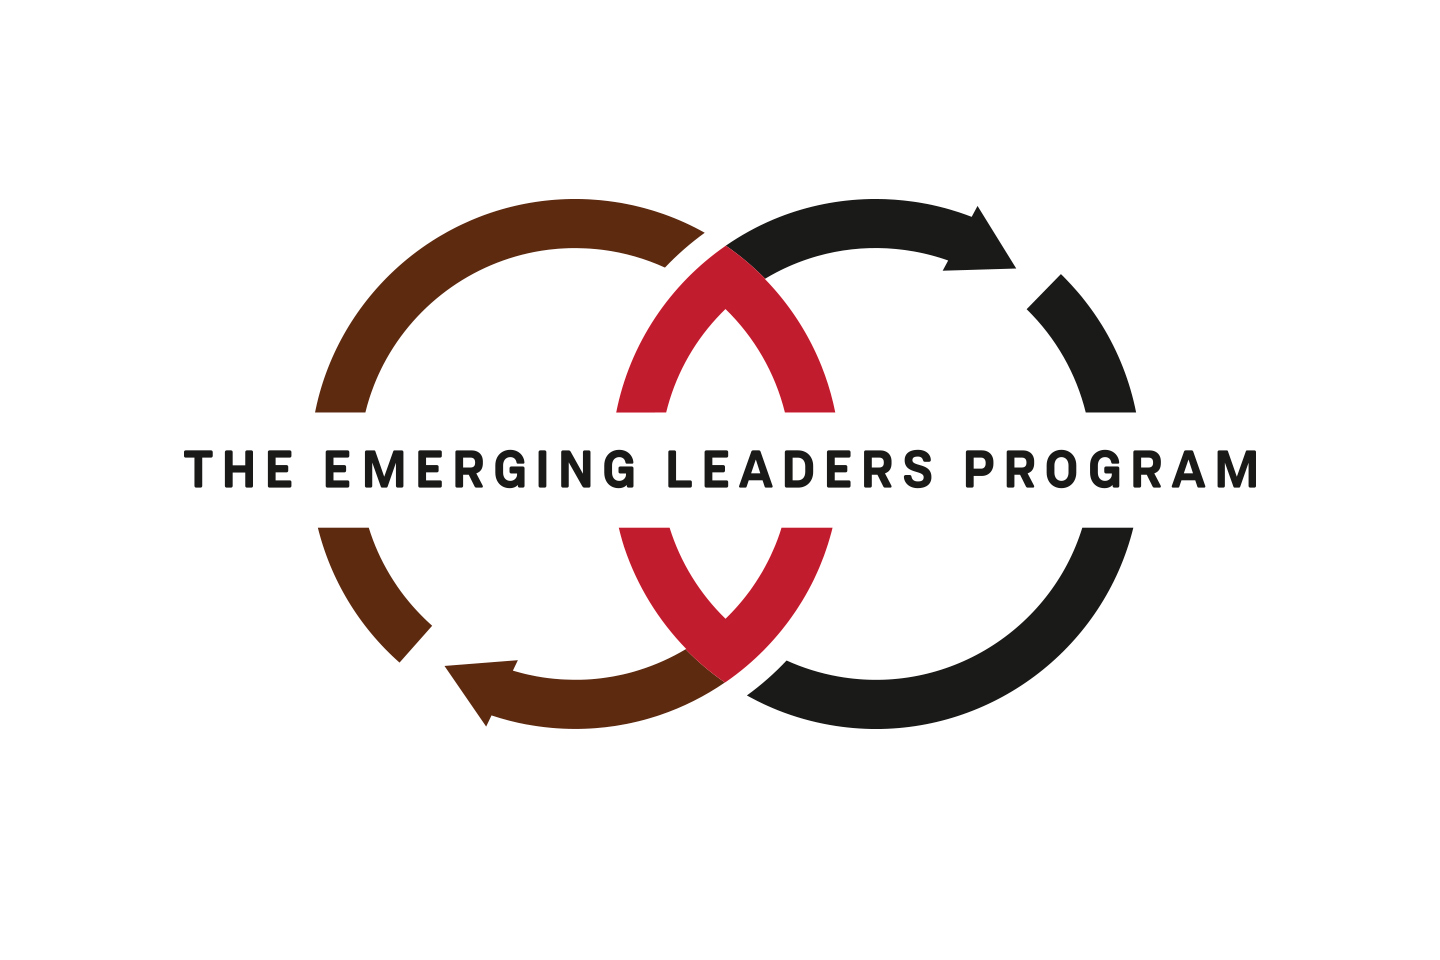 The 2017 Emerging Leaders - SHIFT SHIFT